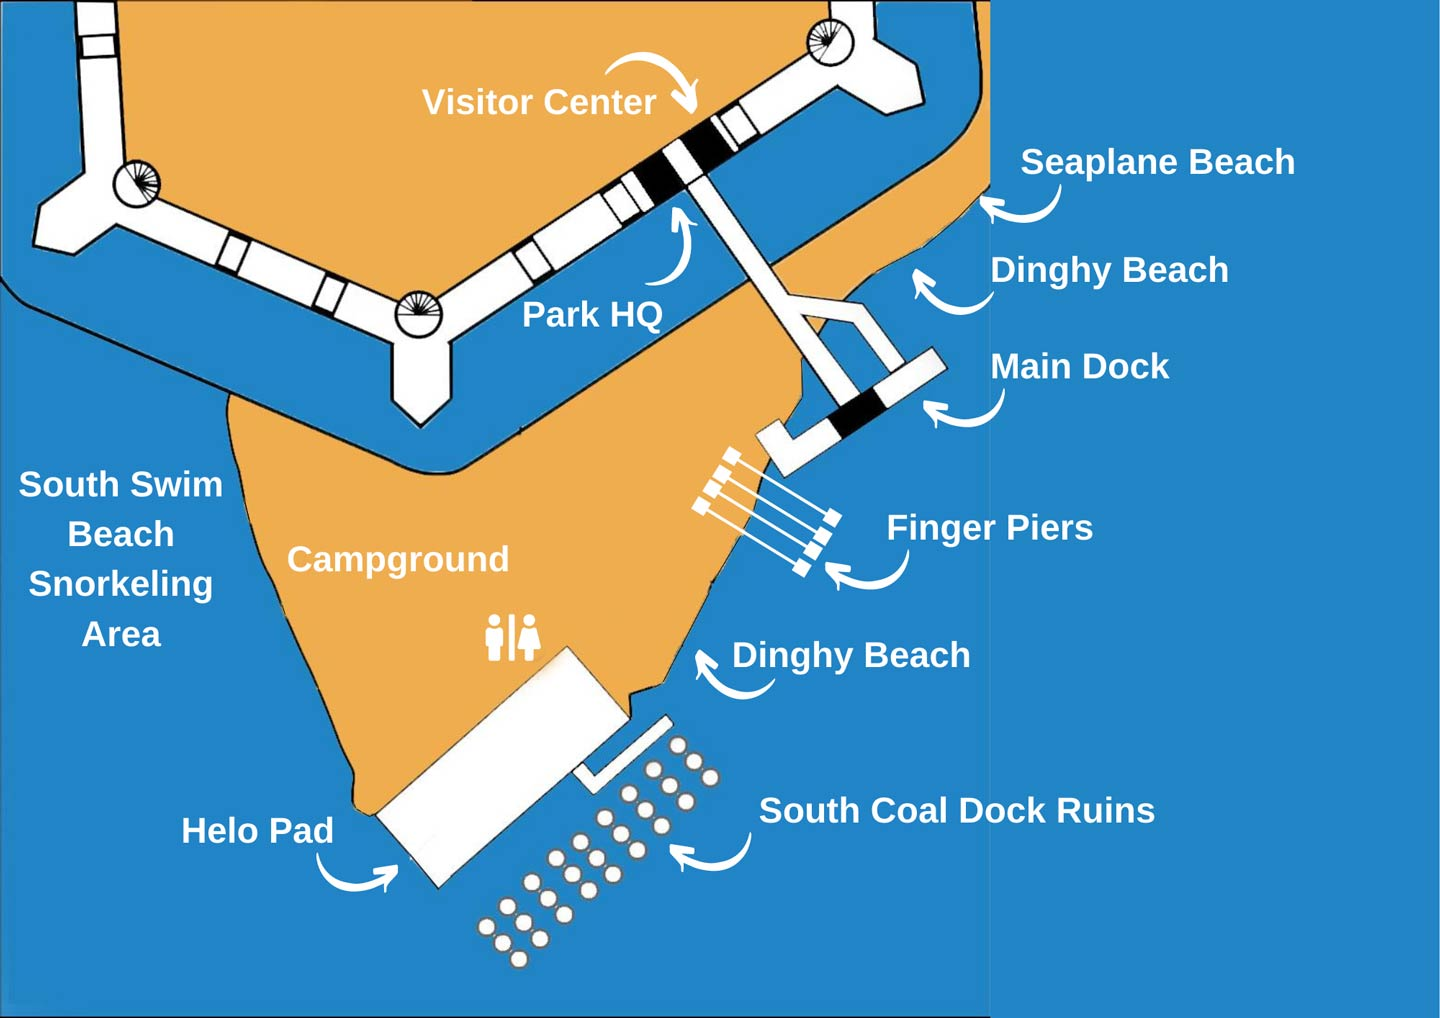 An infographic showing the layout of Garden Key in Dry Tortugas, including fishing spots – Seaplane Beach, Dinghy Beach, The Main Dock, and Finger Piers